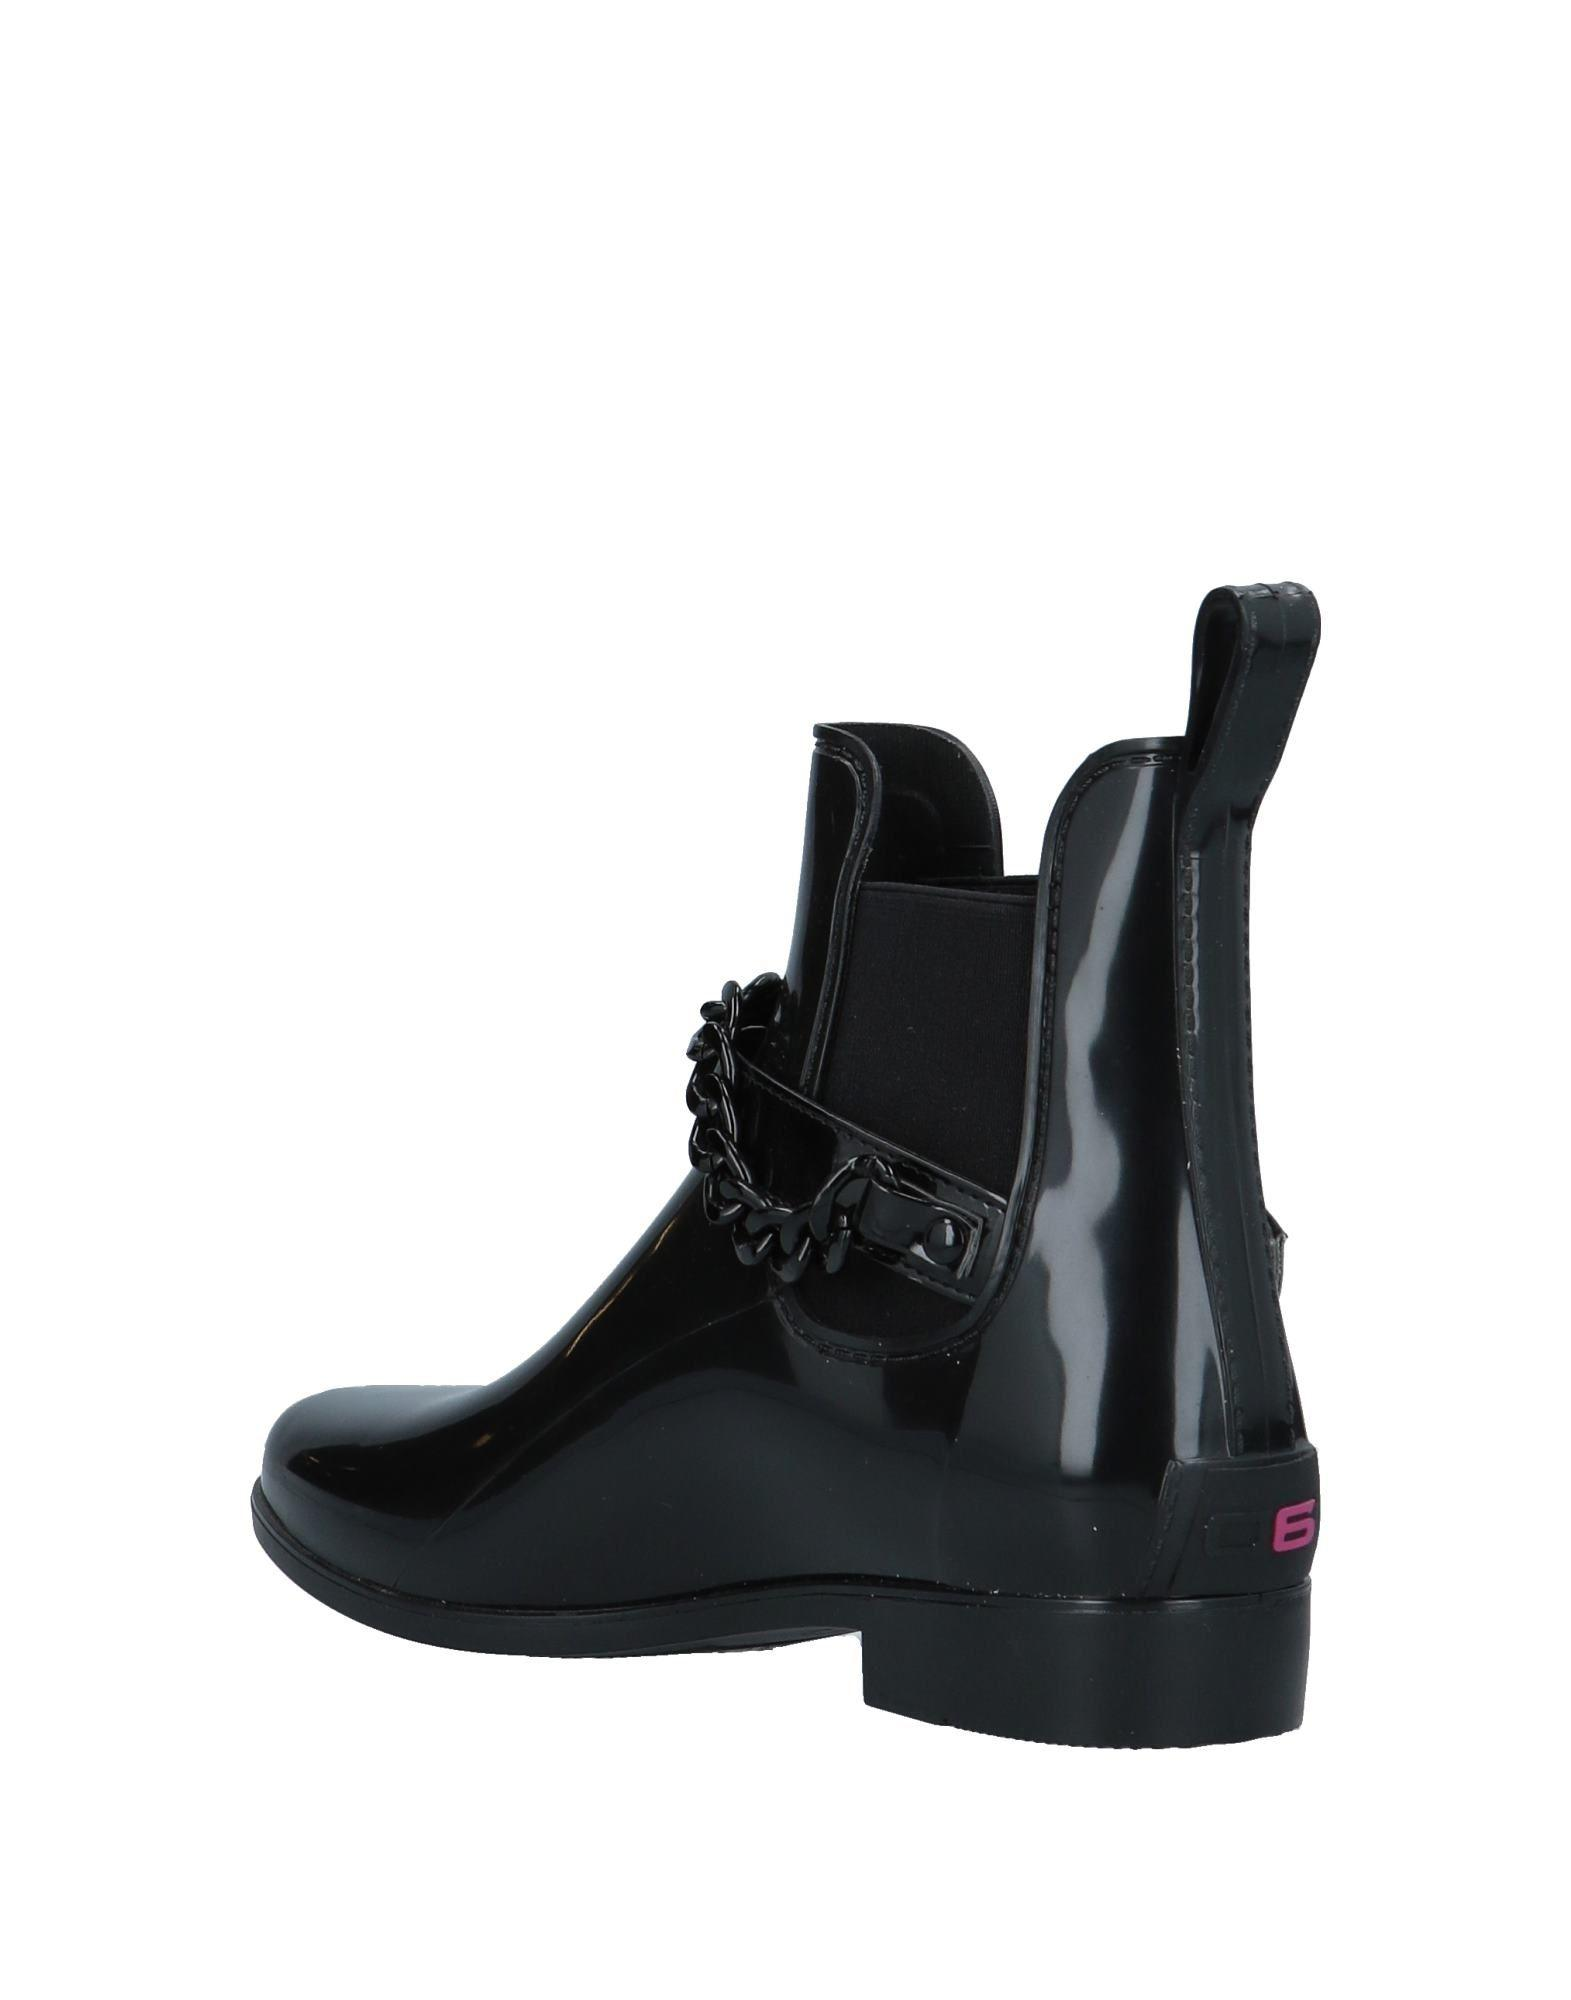 06 Milano Rubber Ankle Boots in Black